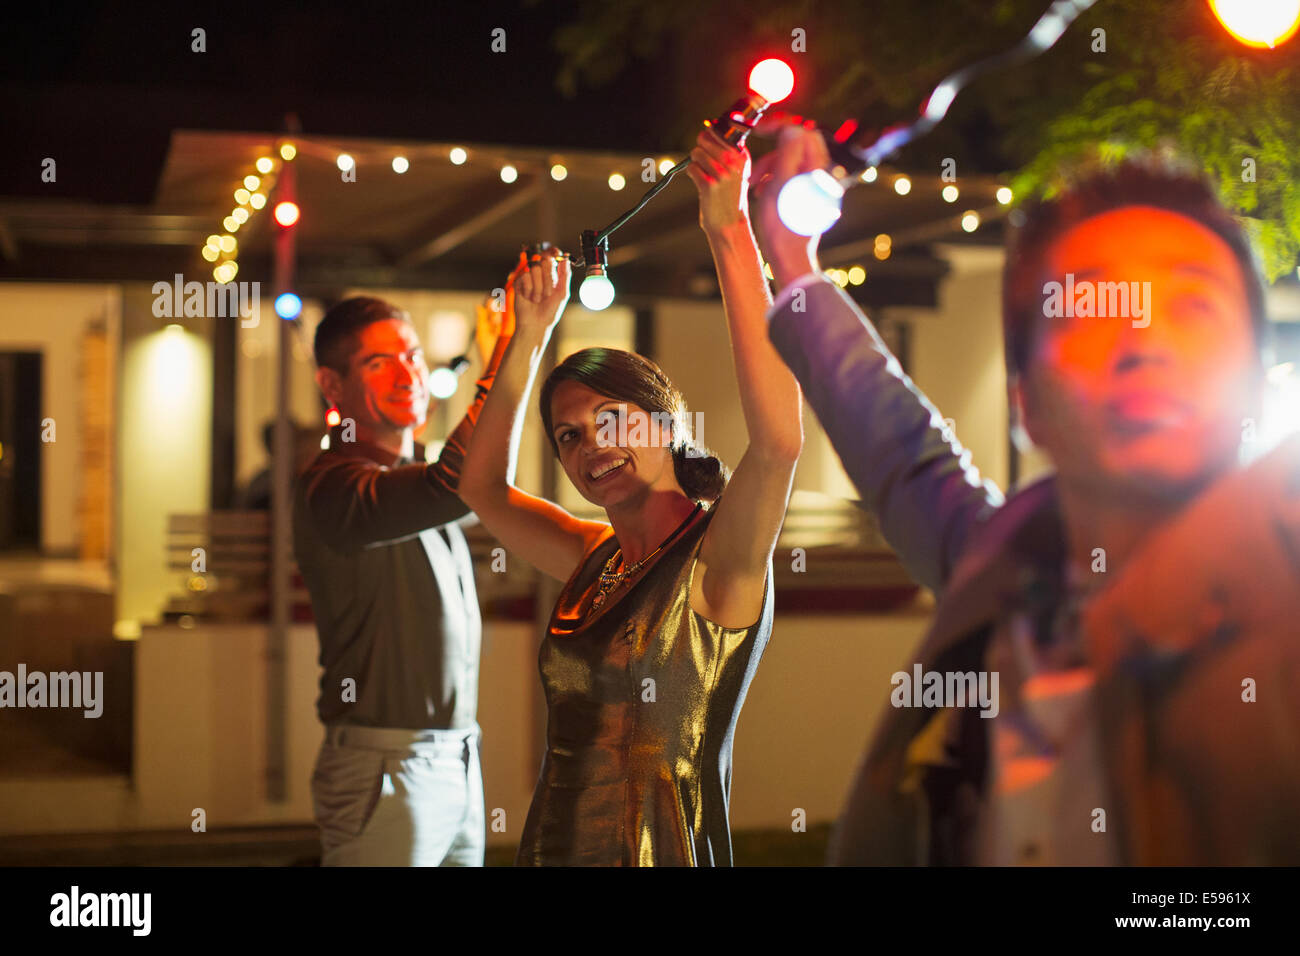 Les amis de filets lights at outdoor party Photo Stock